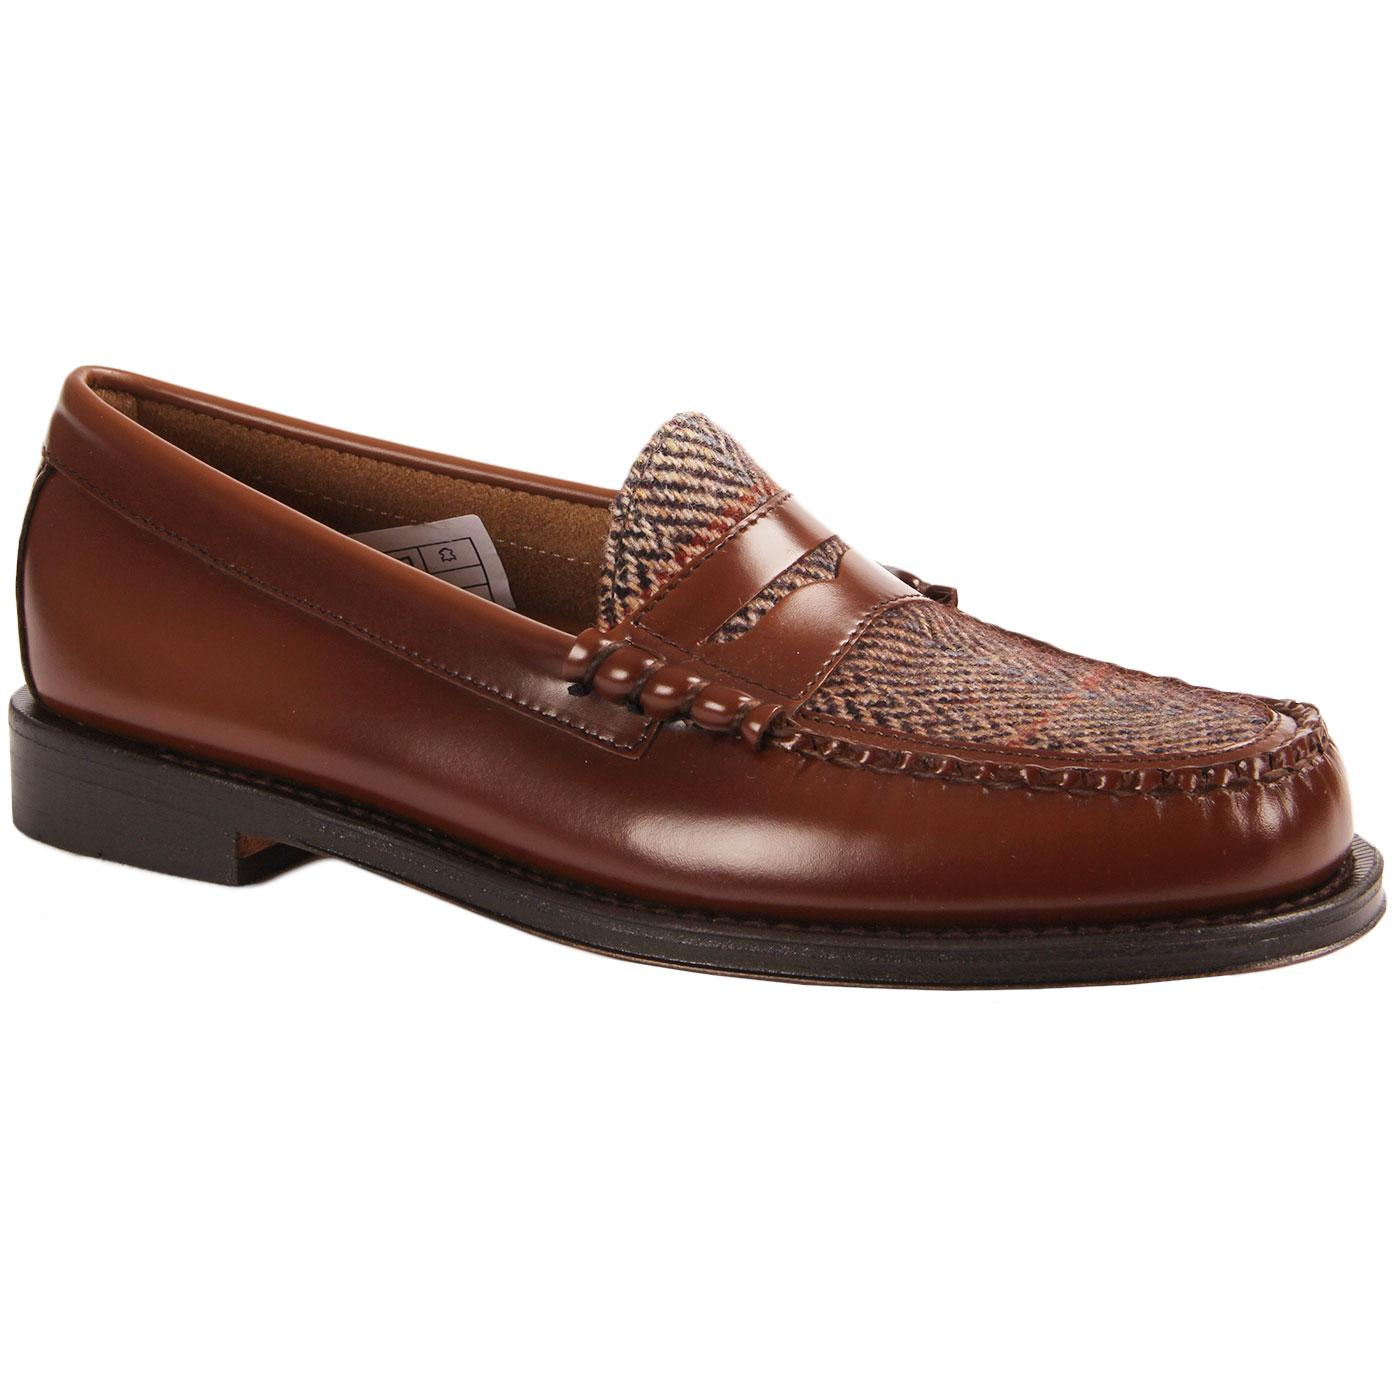 Larson BASS WEEJUNS Mod Tweed Penny Loafers MB